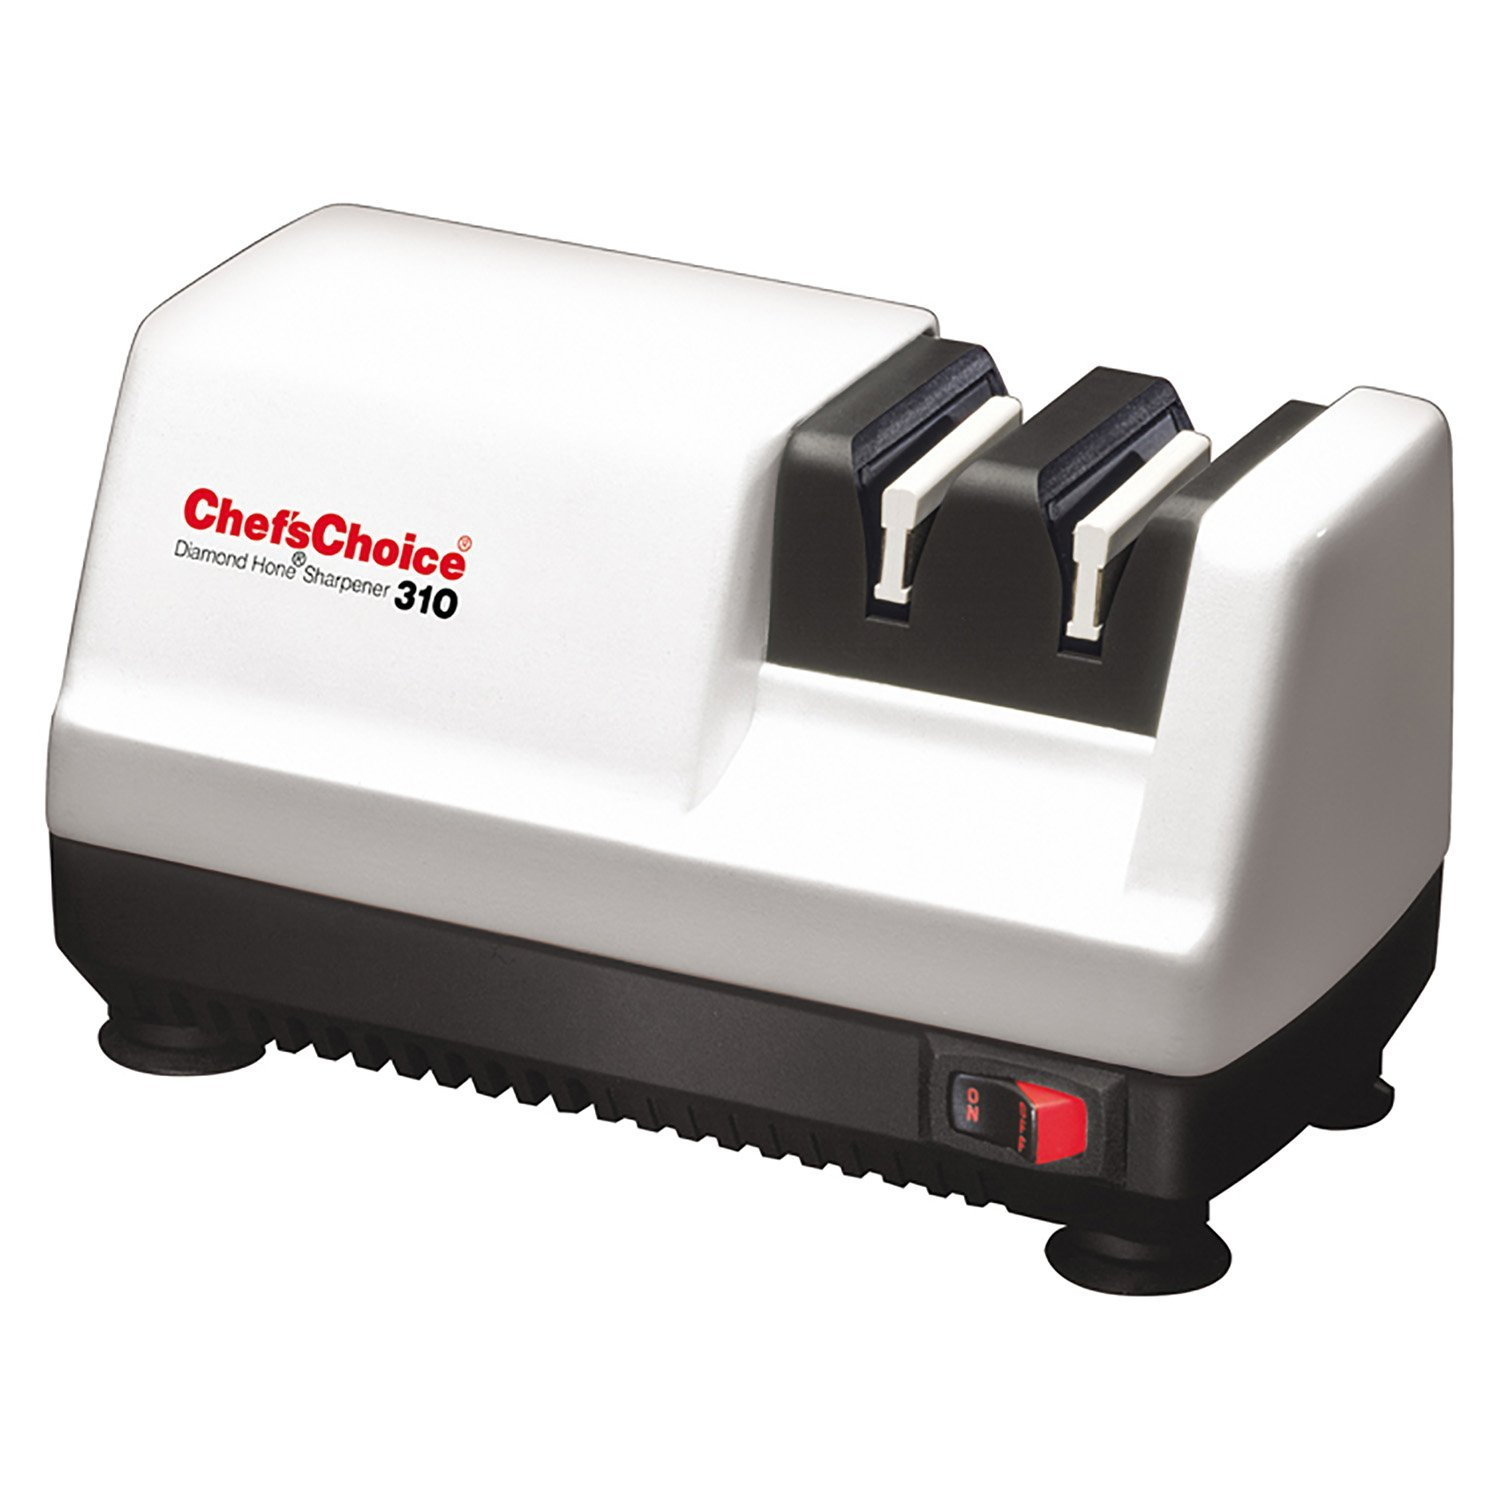 Chef's Choice M310 White Diamond Hone Multi-Stage Knife Sharpener